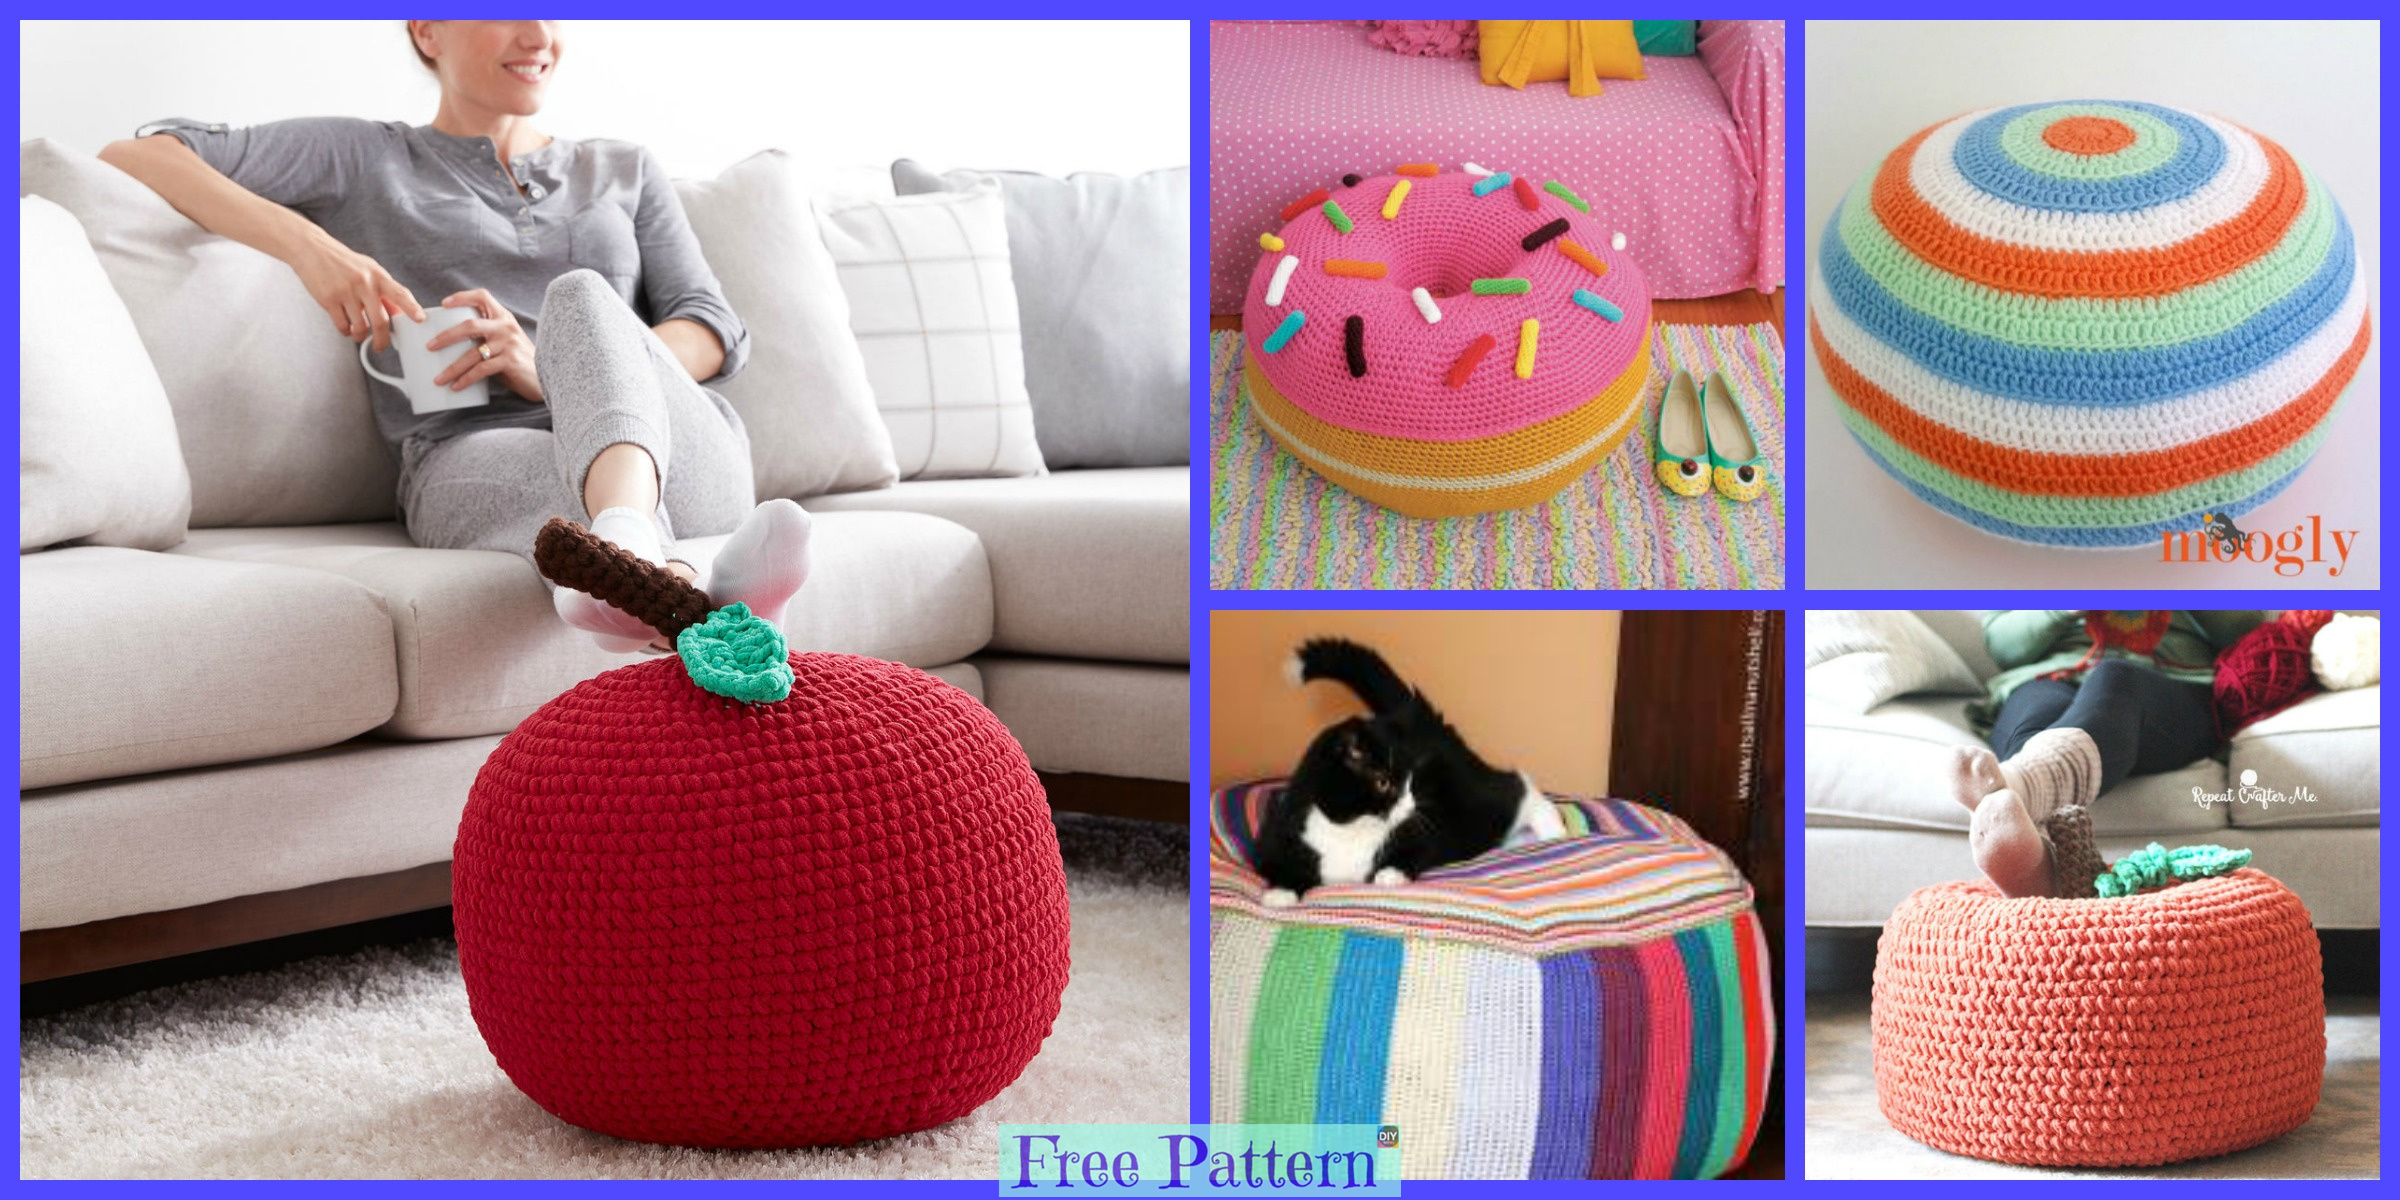 8 Crochet Colorful Pouf  Free Patterns